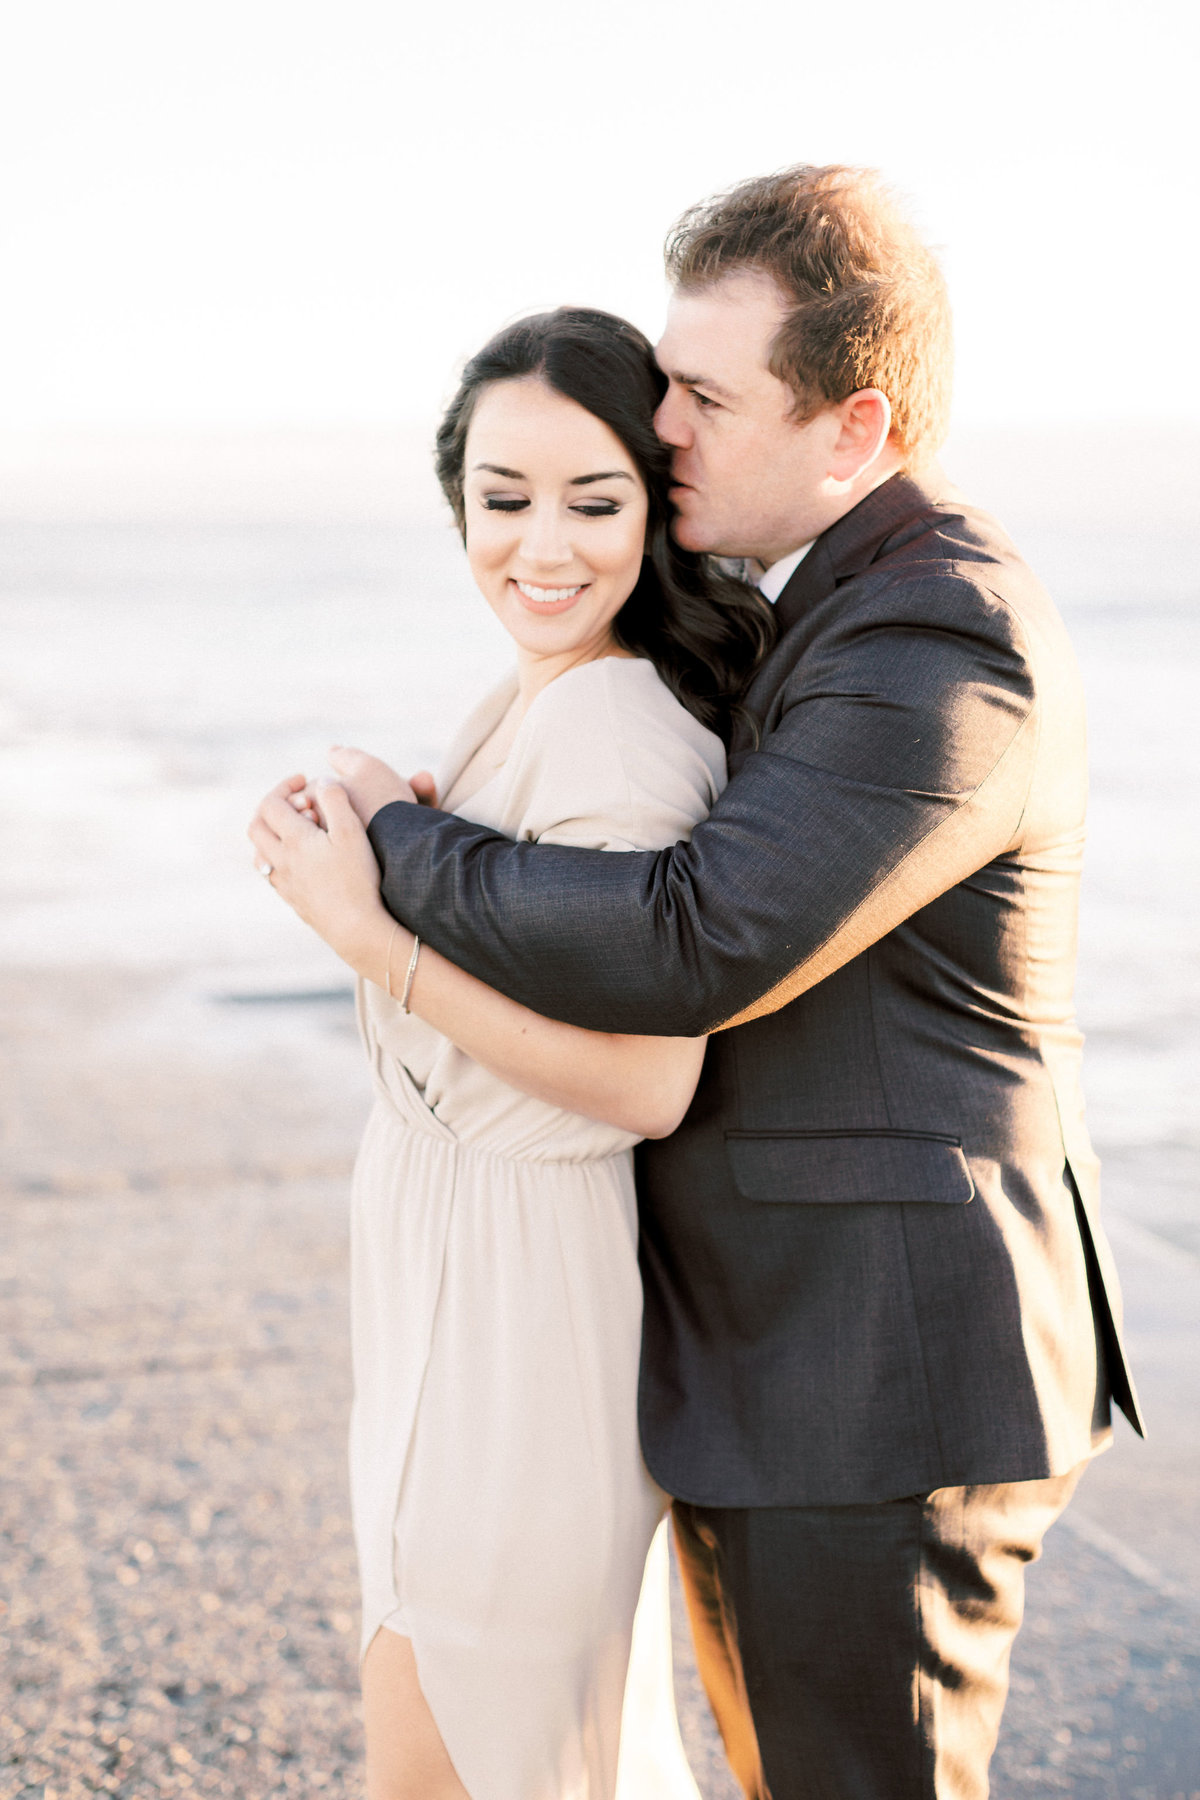 TiffaneyChildsPhotography-ChicagoWeddingPhotographer-Frankie+Brian-NorthAvenueBeach&RiverwalkEngagementSession-49